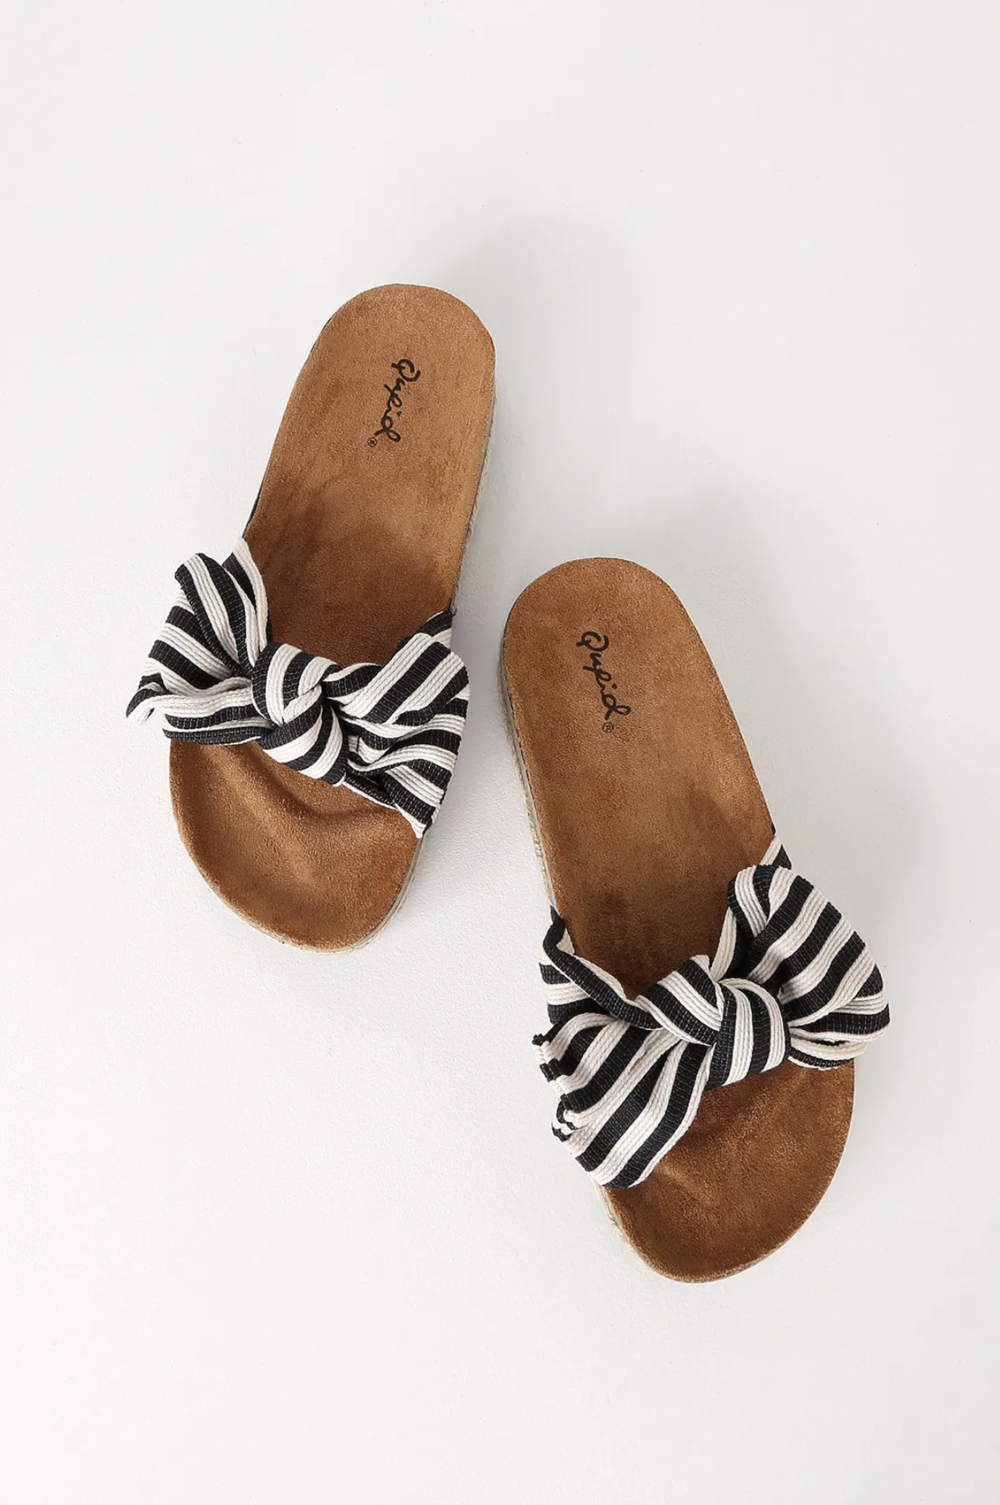 Pair the Dana Point Black and White Striped Espadrille Slide Sandals with cut-off shorts and head out to the beach! A fabric black and white striped toe strap has a cute bow detail, above a soft suede contoured insole, and trendy cork and espadrille outsole. Slide-on design.